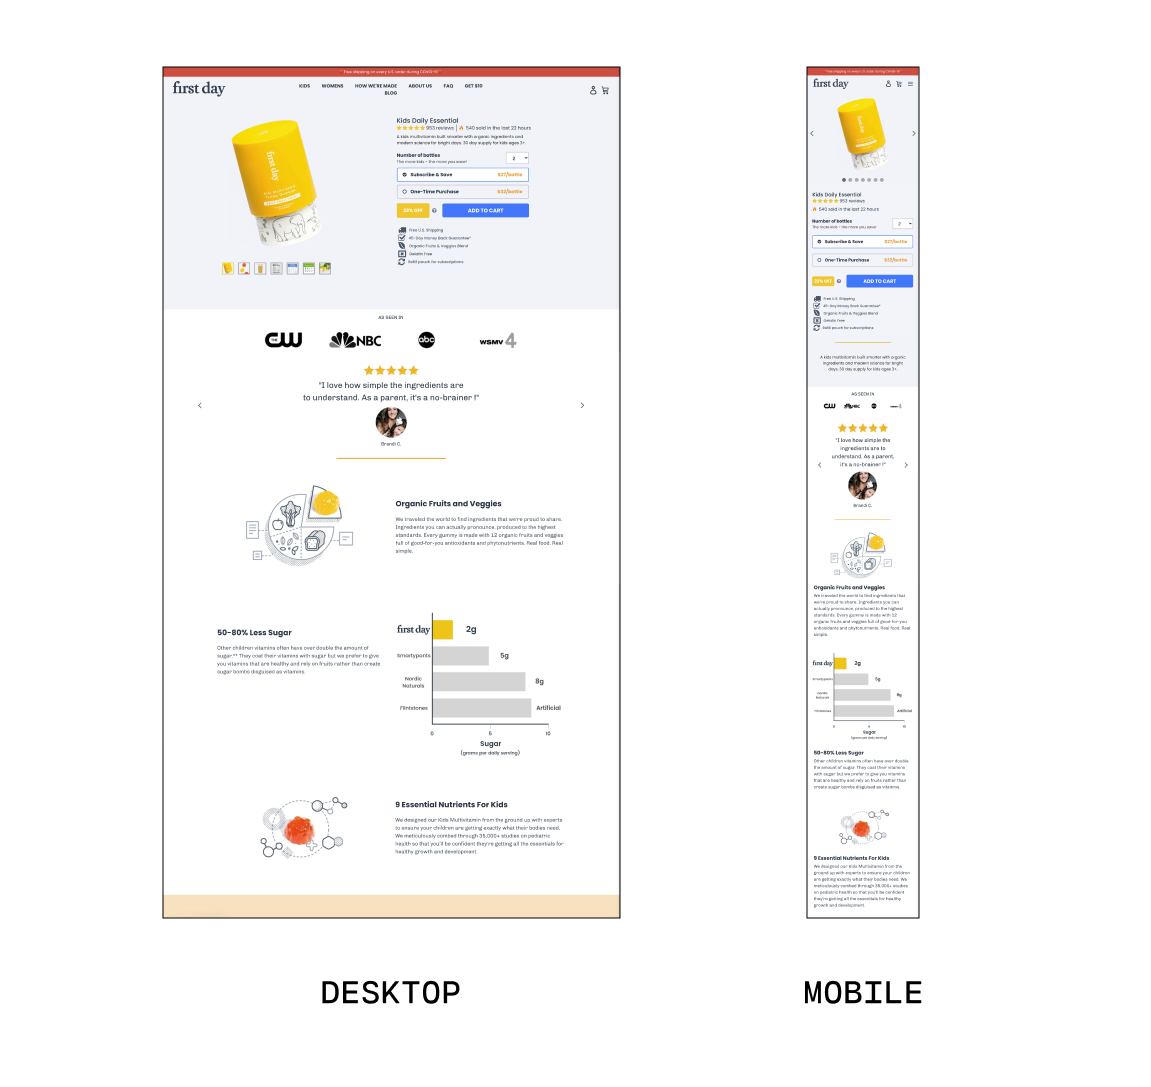 first day landing page desktop vs mobile side by side